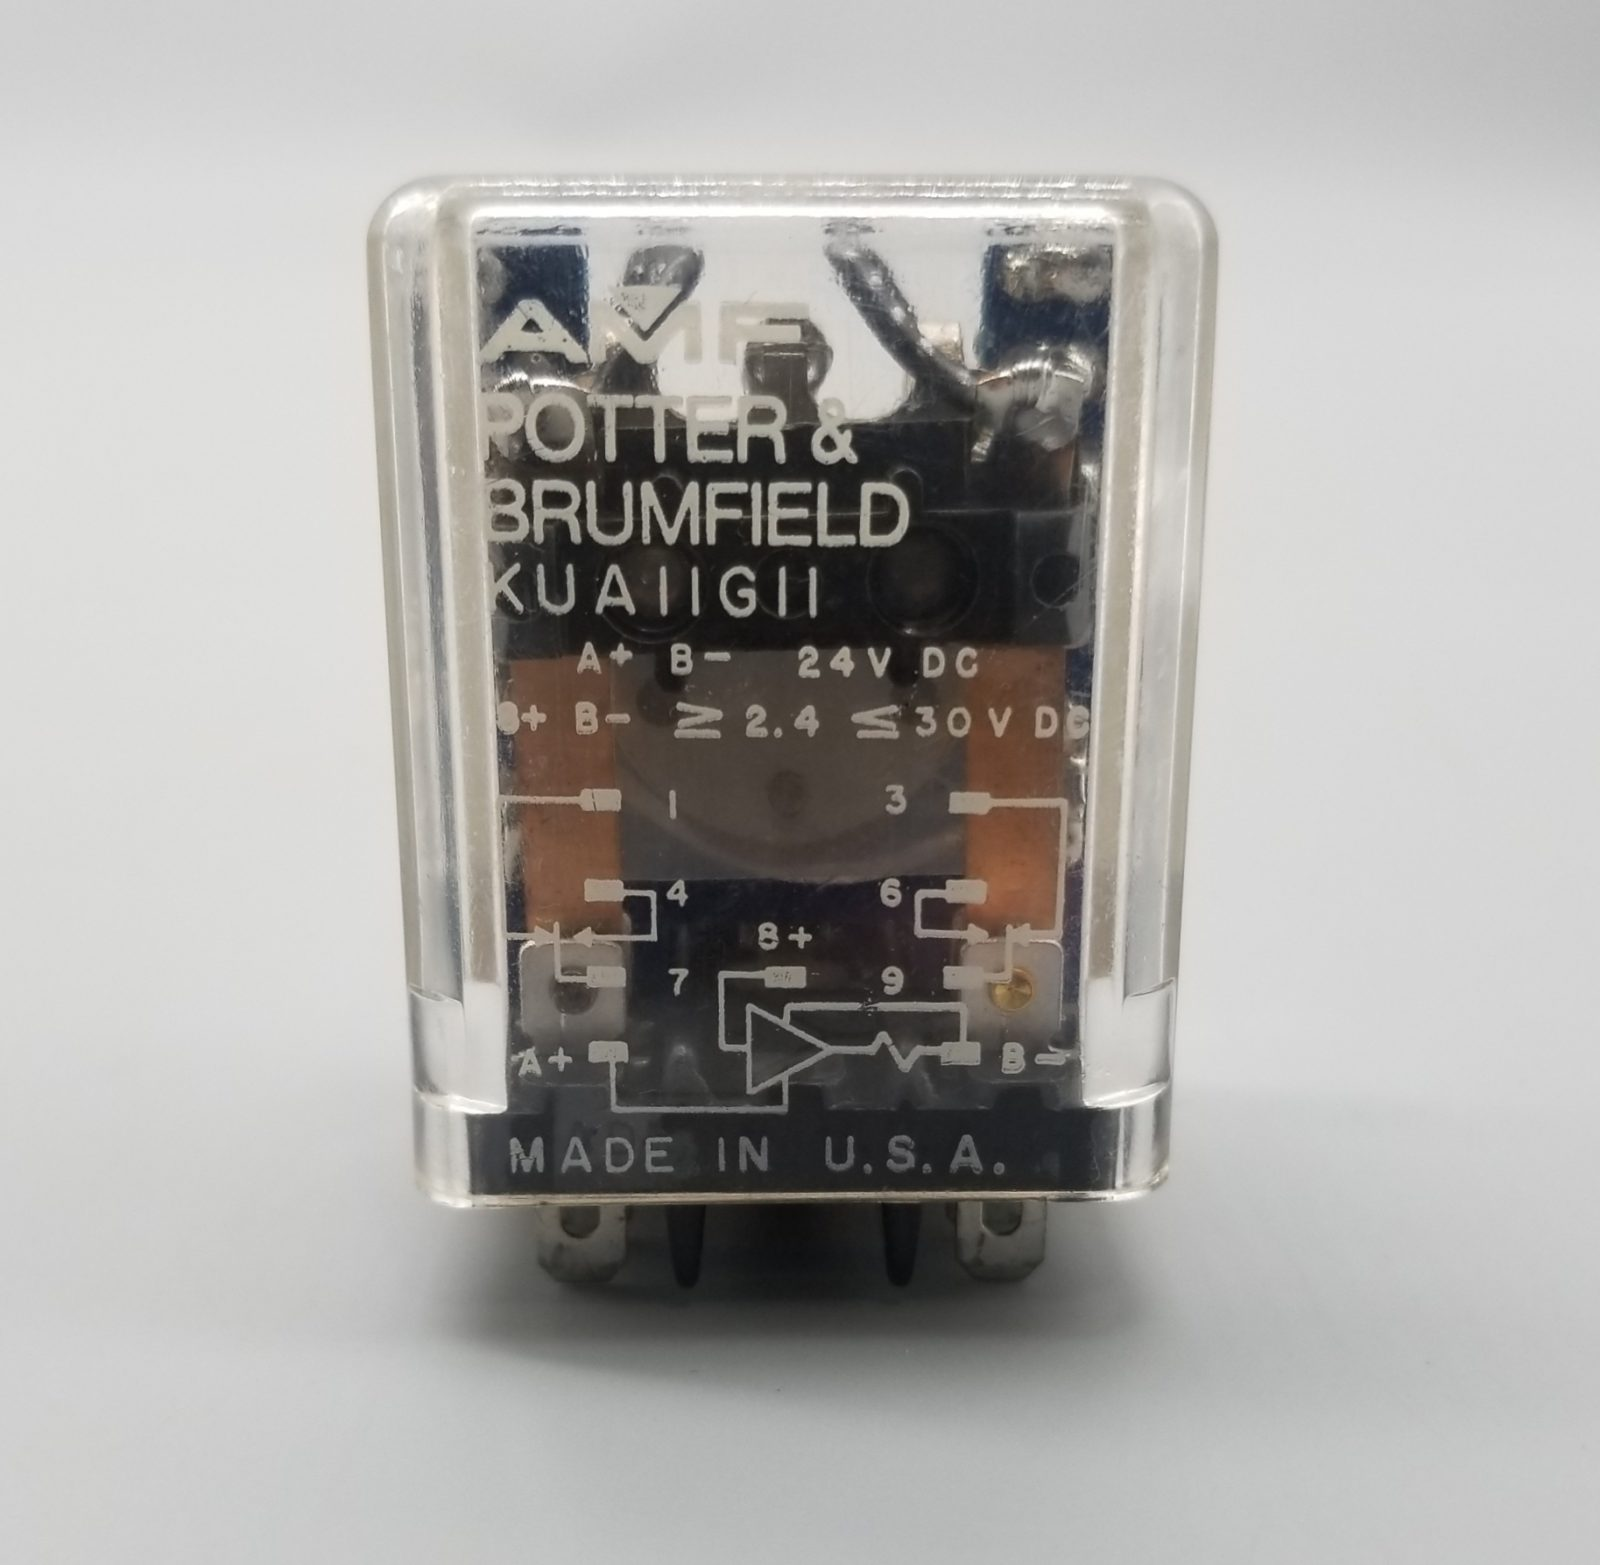 Potter & Brumfield KUA11G11 Plug In Relay 24 VDC